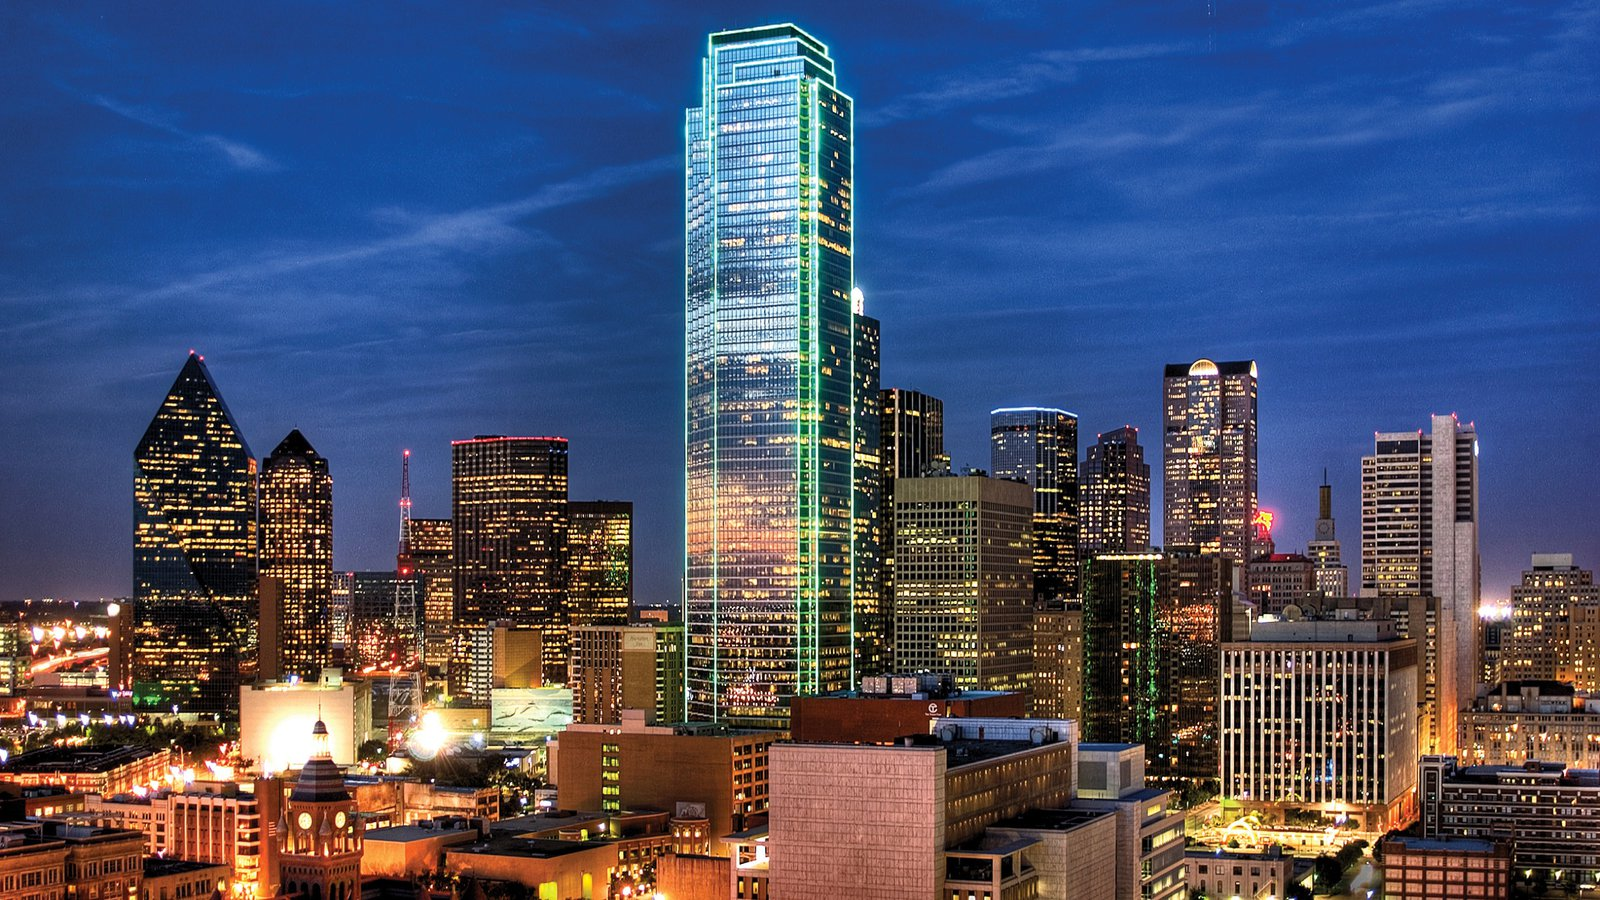 Modern Architecture Dallas modern architecture pictures: view images of dallas